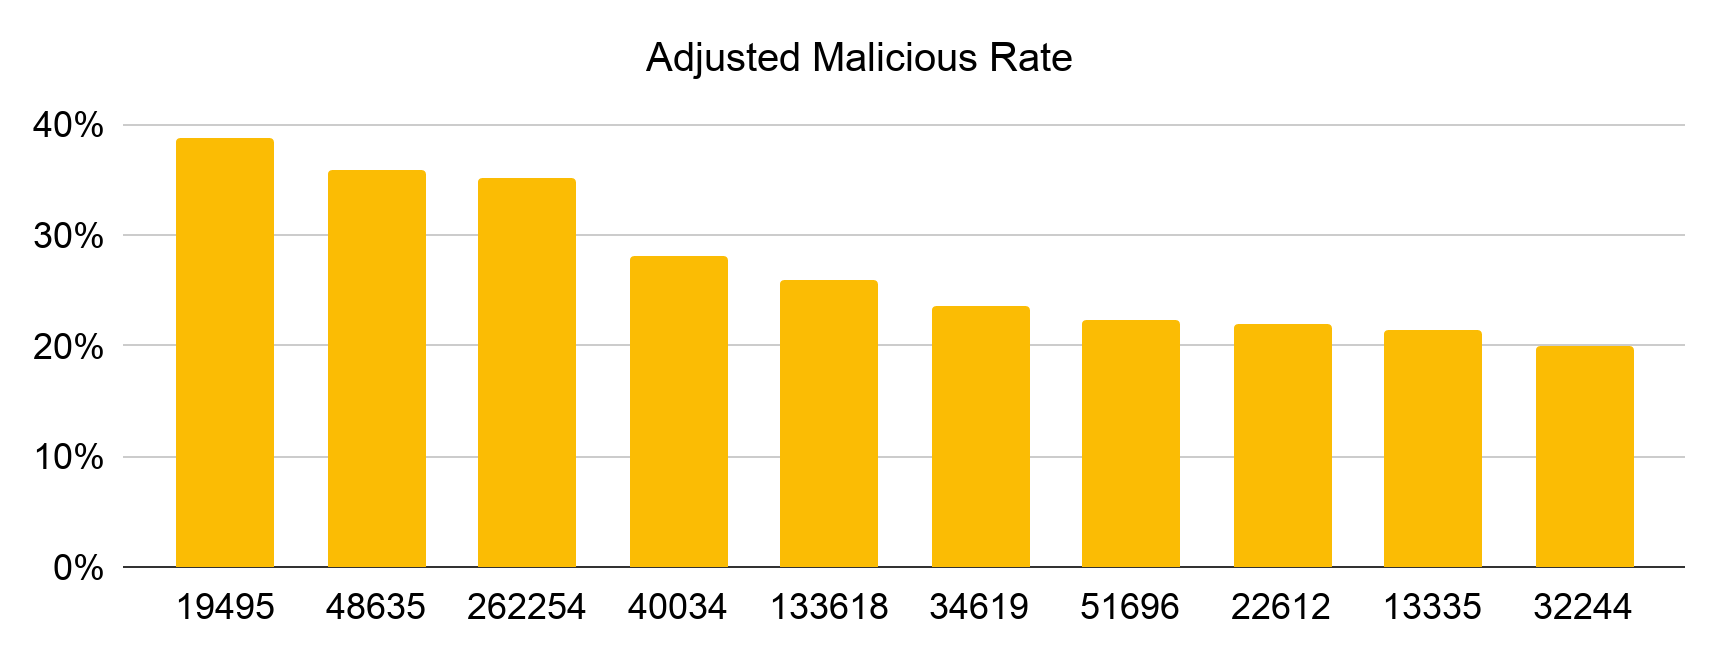 Ranked by adjusted malicious rate, the top 10 autonomous systems most abused by cybersquatting in December 2019 are 19495, 48635, 262254, 40034, 133618, 34619, 51696, 22612, 13335, 32244